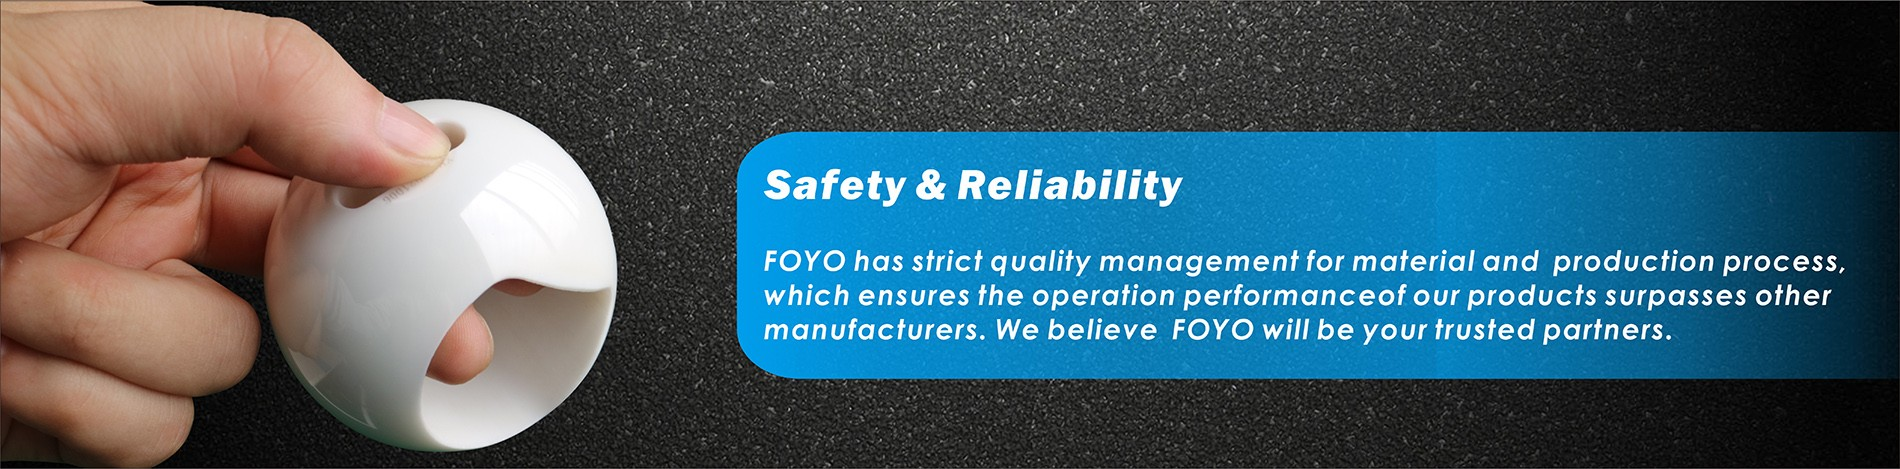 Safety and reliability of FOYO Ceramic Valves